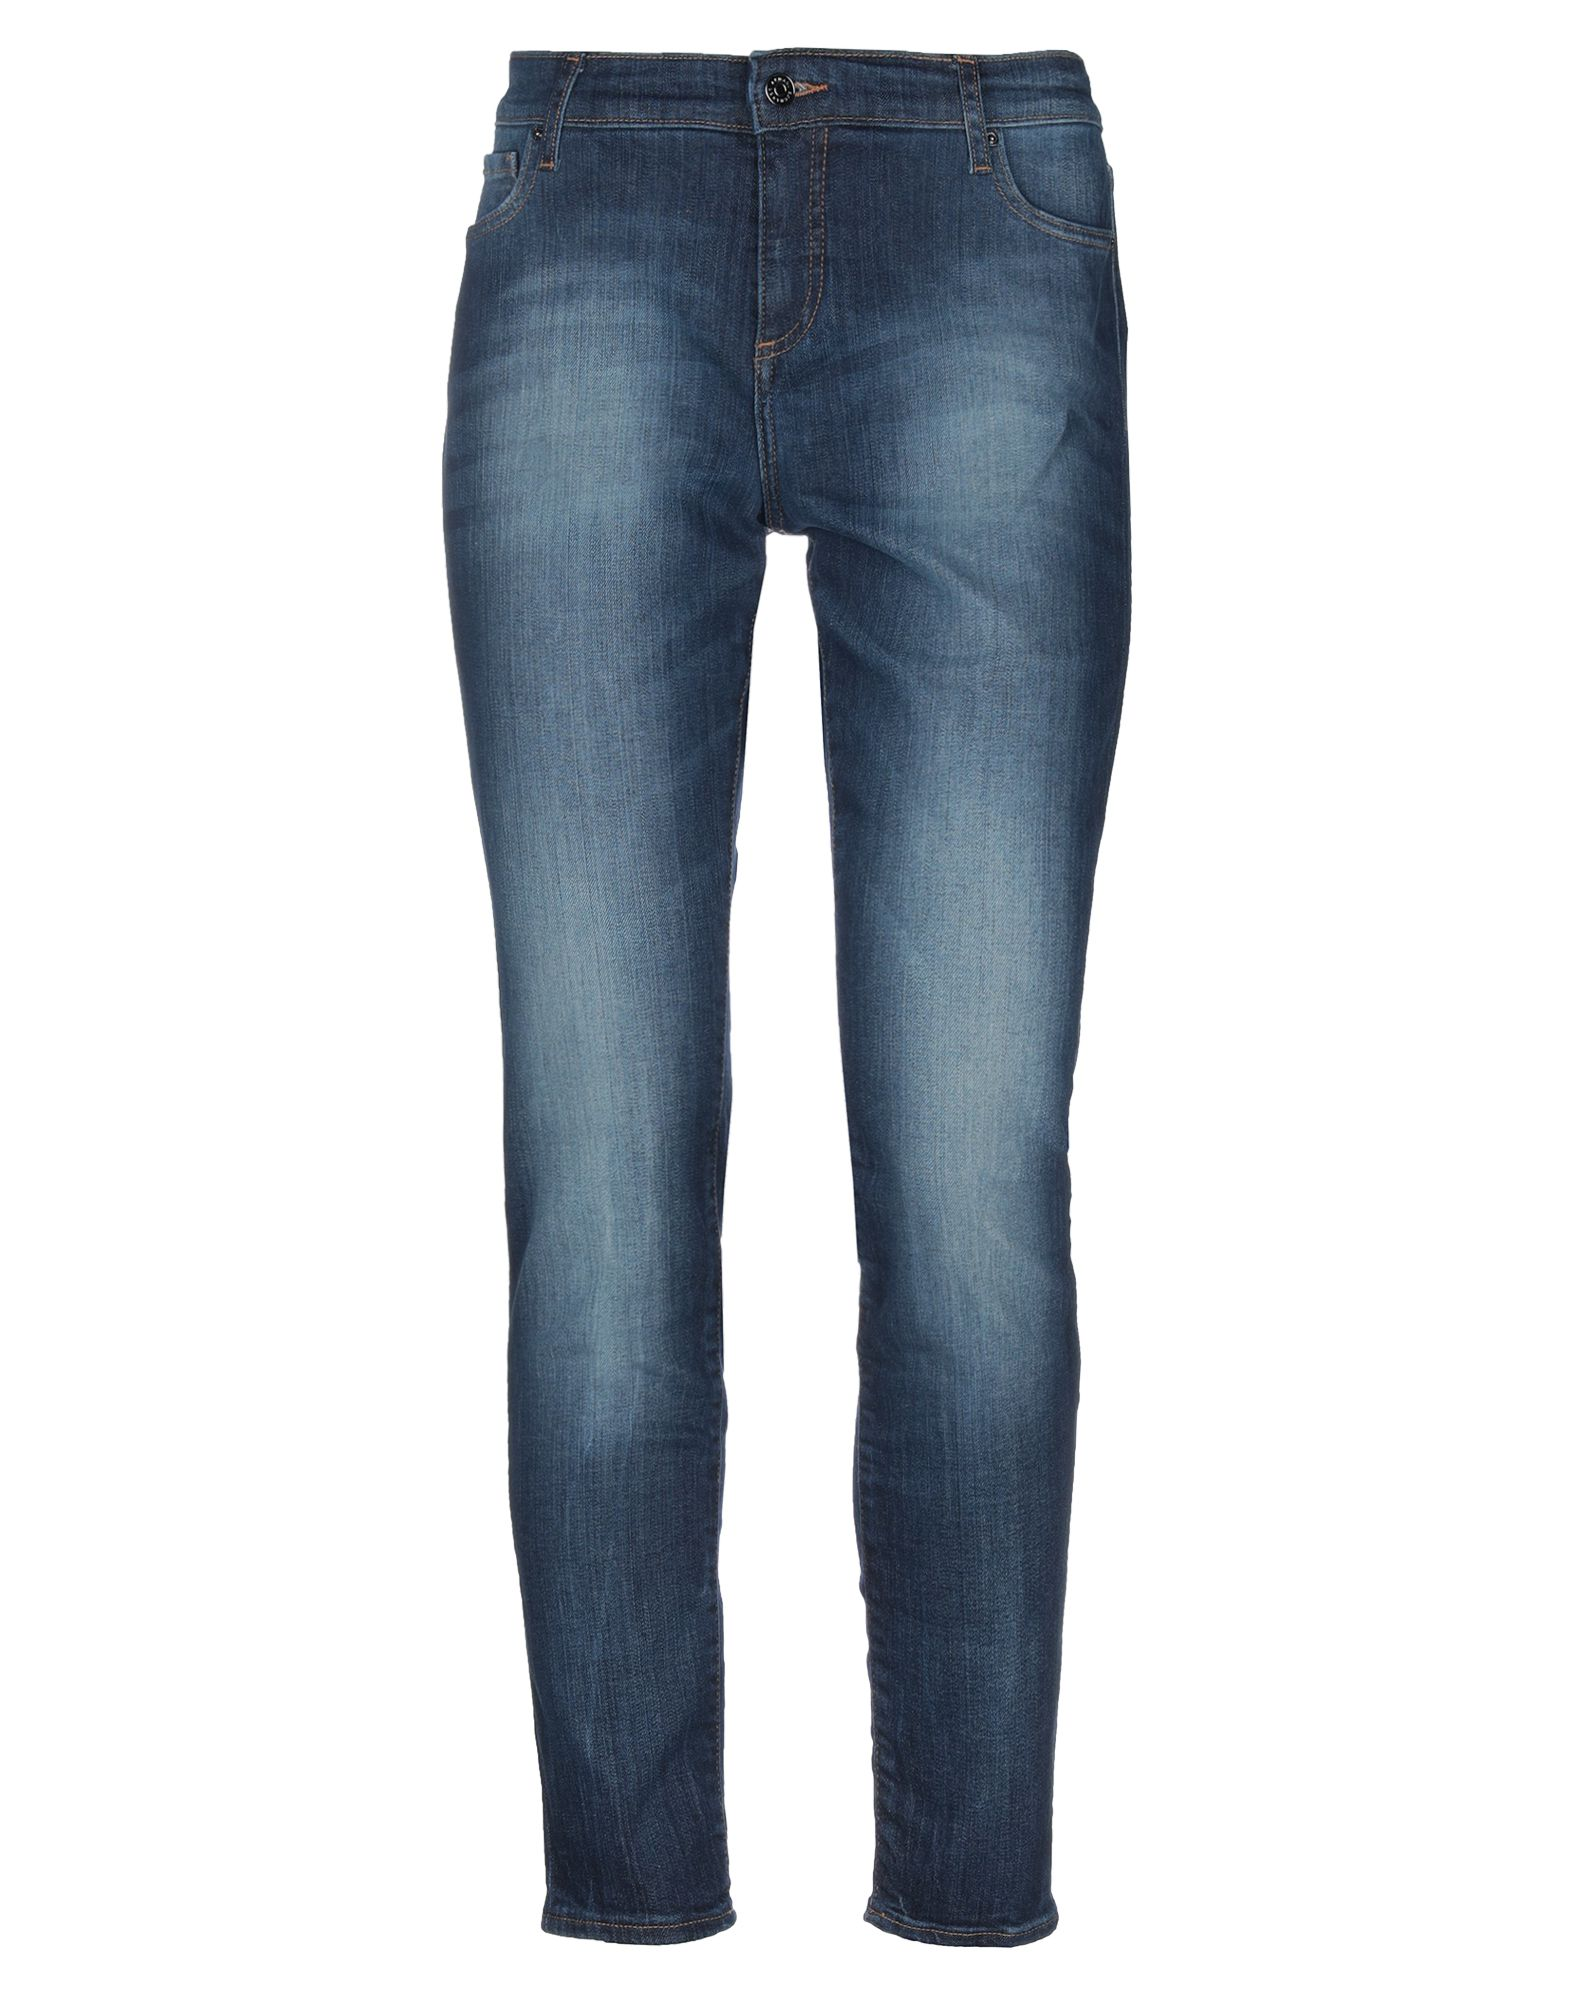 ARMANI EXCHANGE Denim pants - Item 42812231